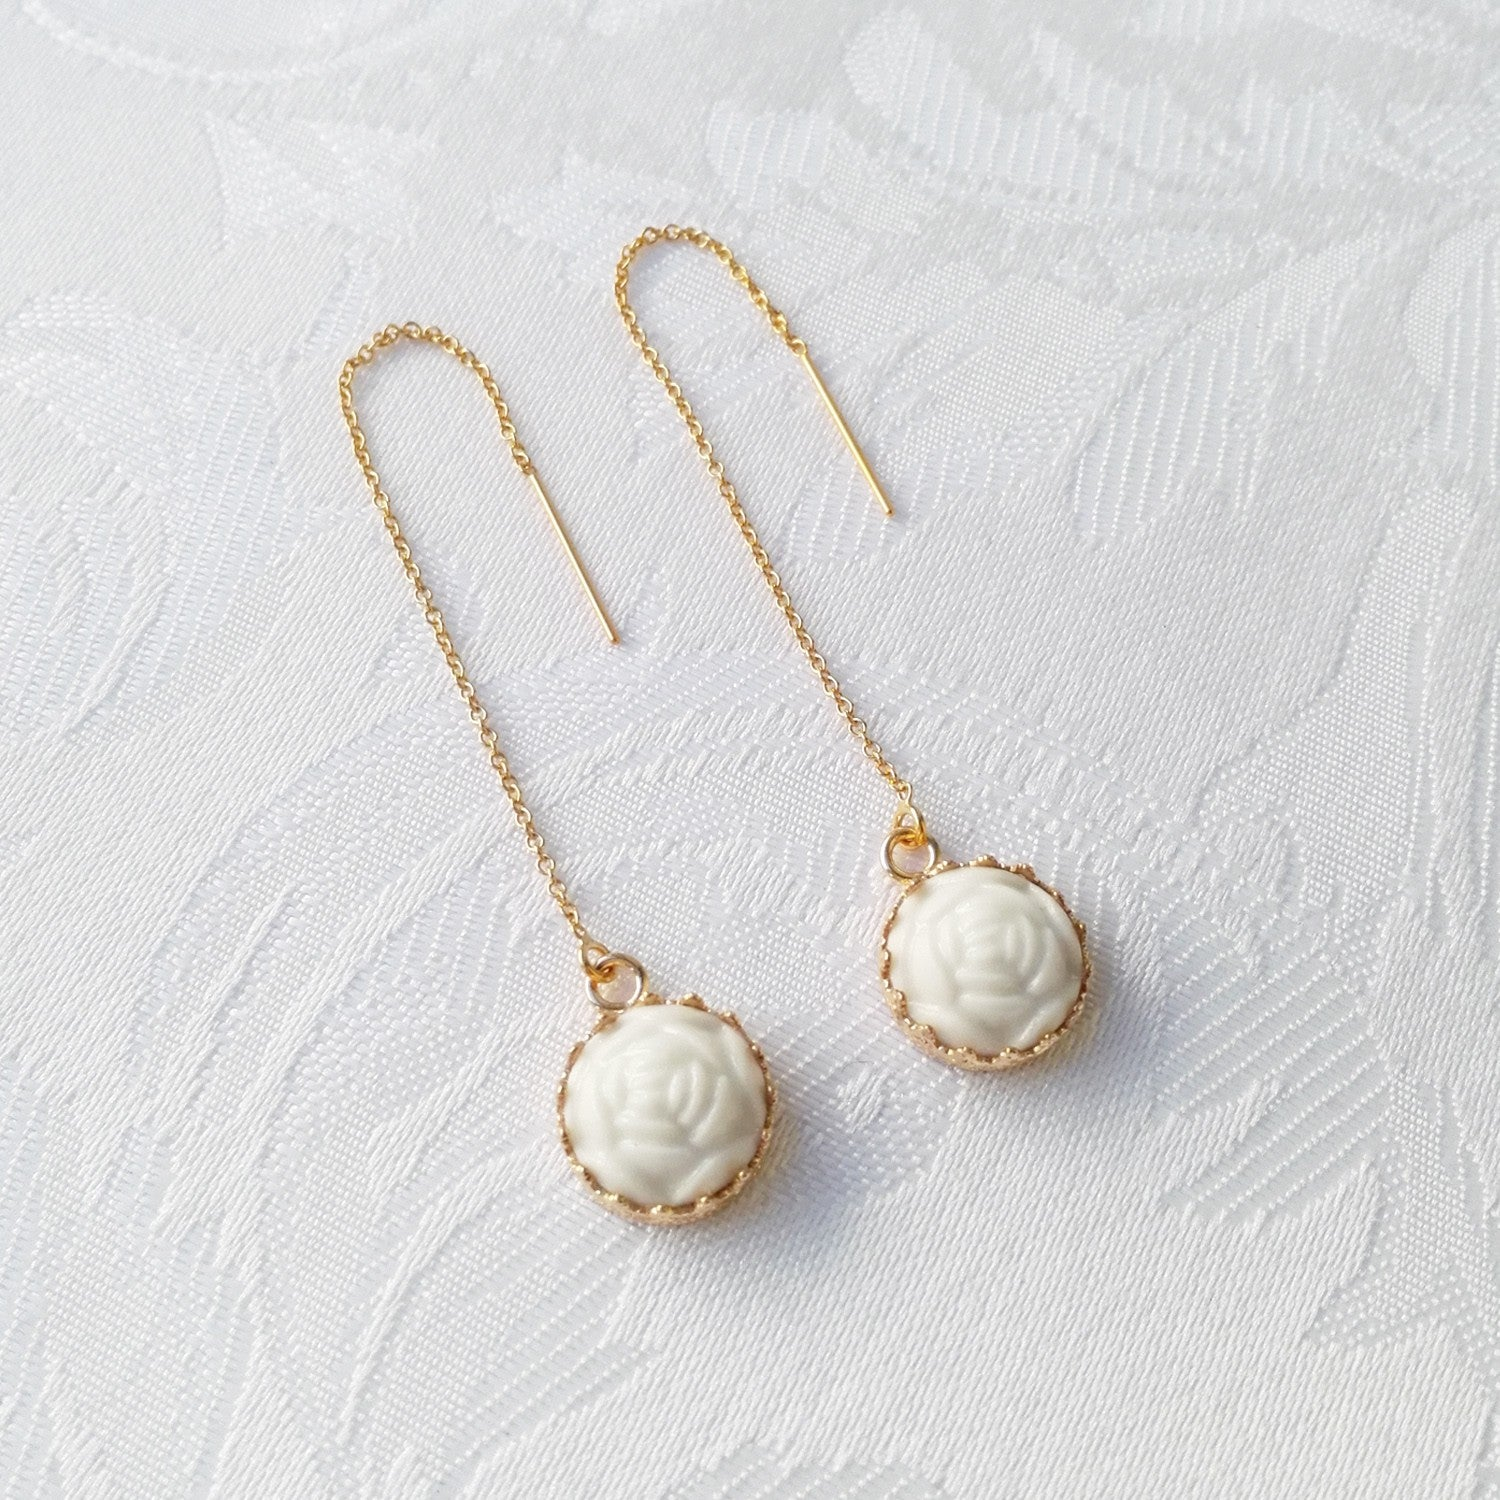 Mini Porcelain Rose With Gold-Filled Chain Earrings by POPORCELAIN on OOSTOR.com